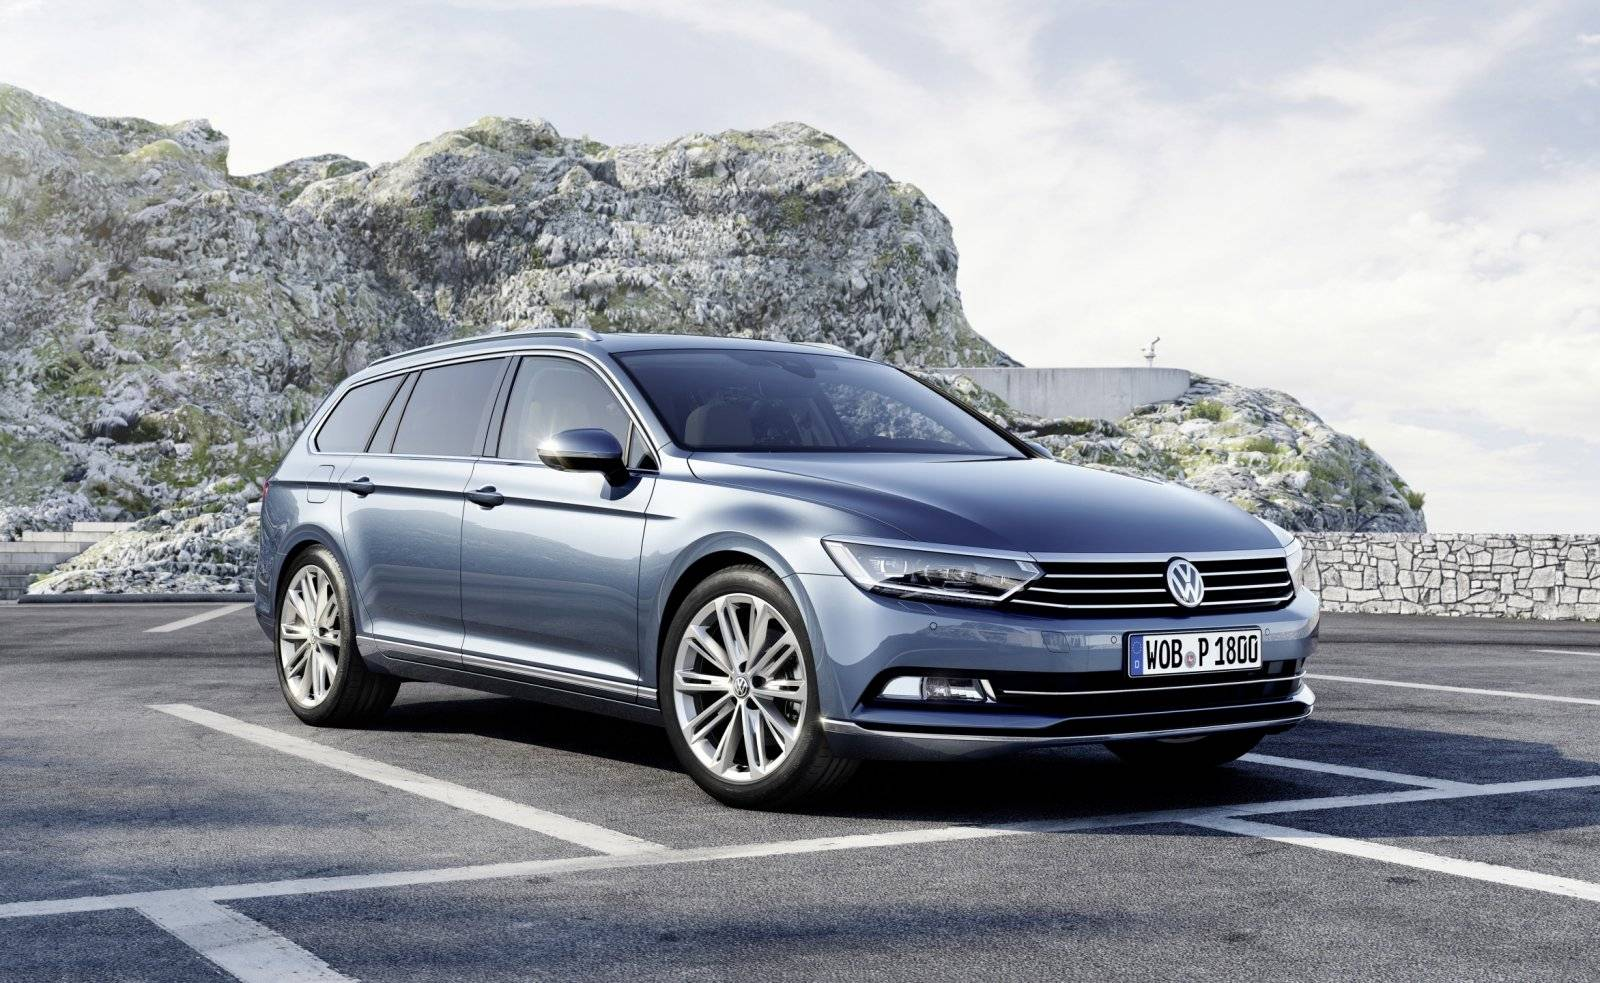 de nieuwe volkswagen passat en passat variant. Black Bedroom Furniture Sets. Home Design Ideas